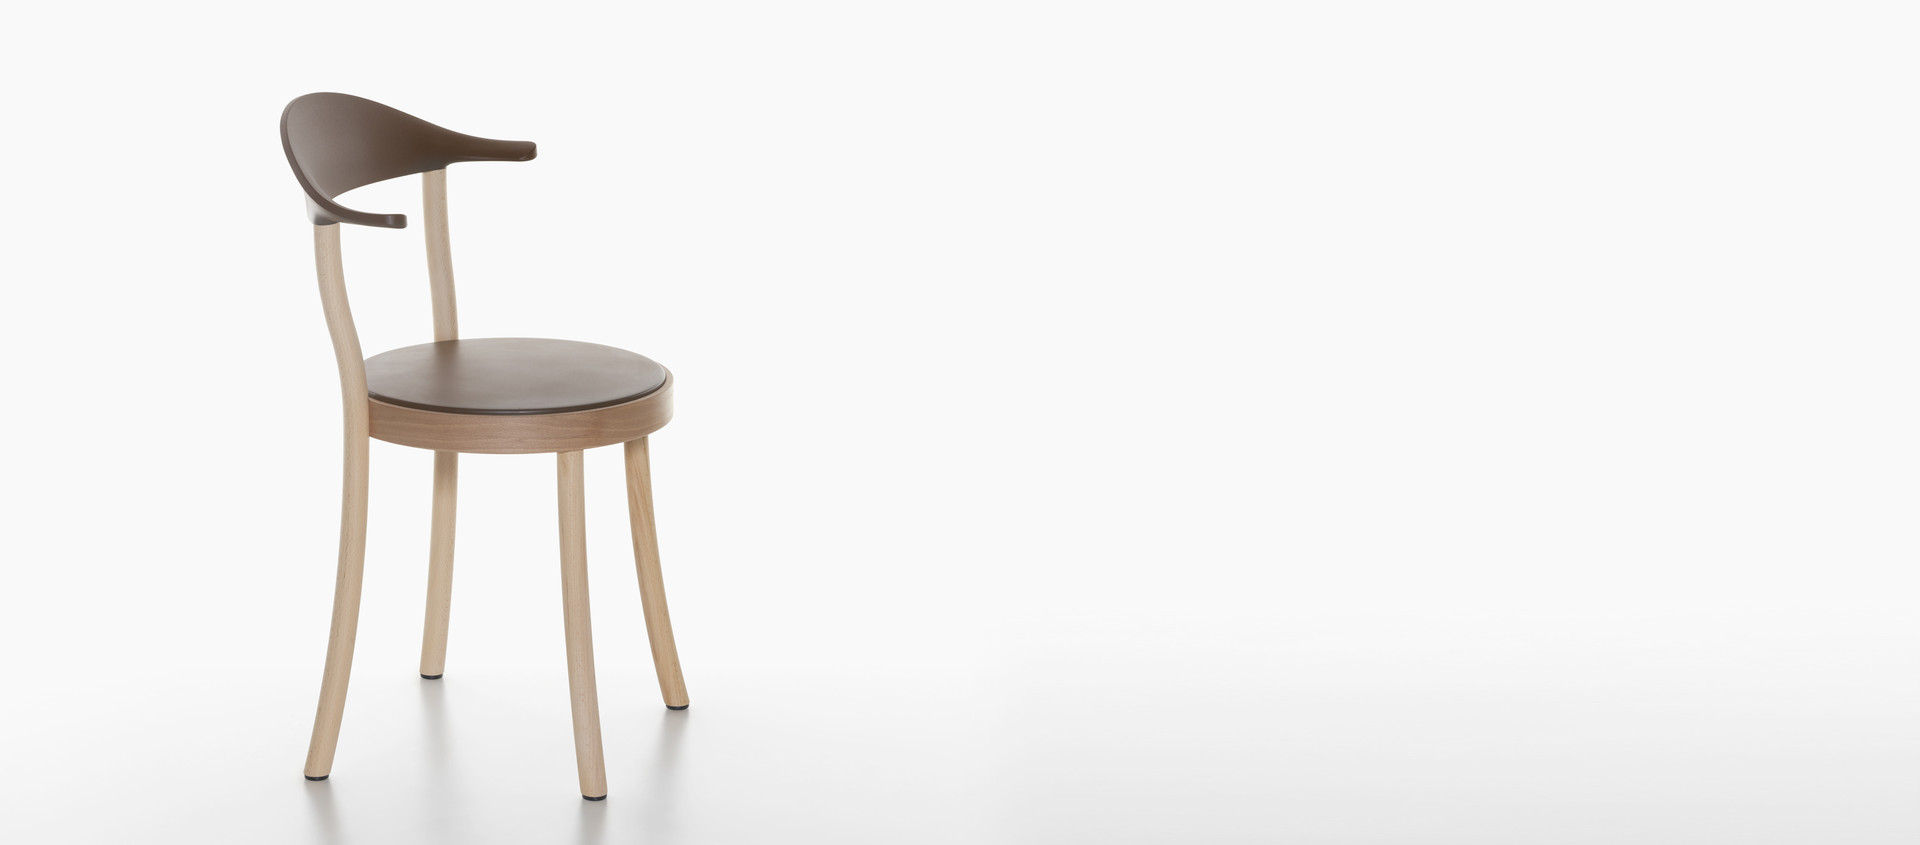 HERO - PLANK MONZA BISTRO chair